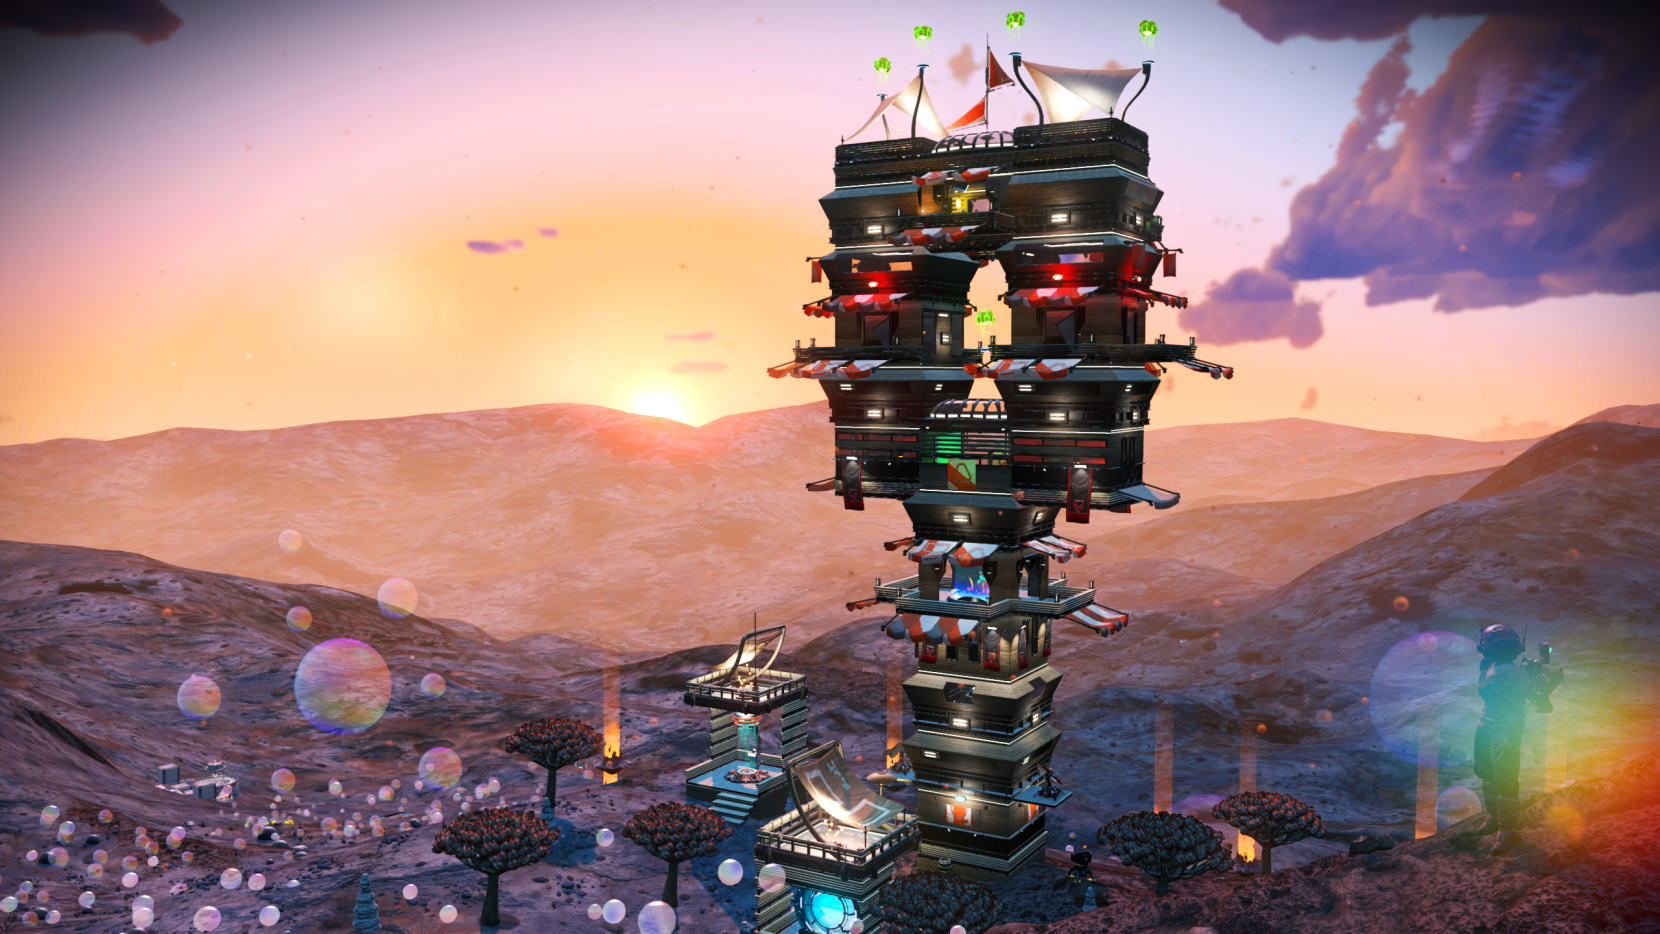 Wooden tower on QS mission planet